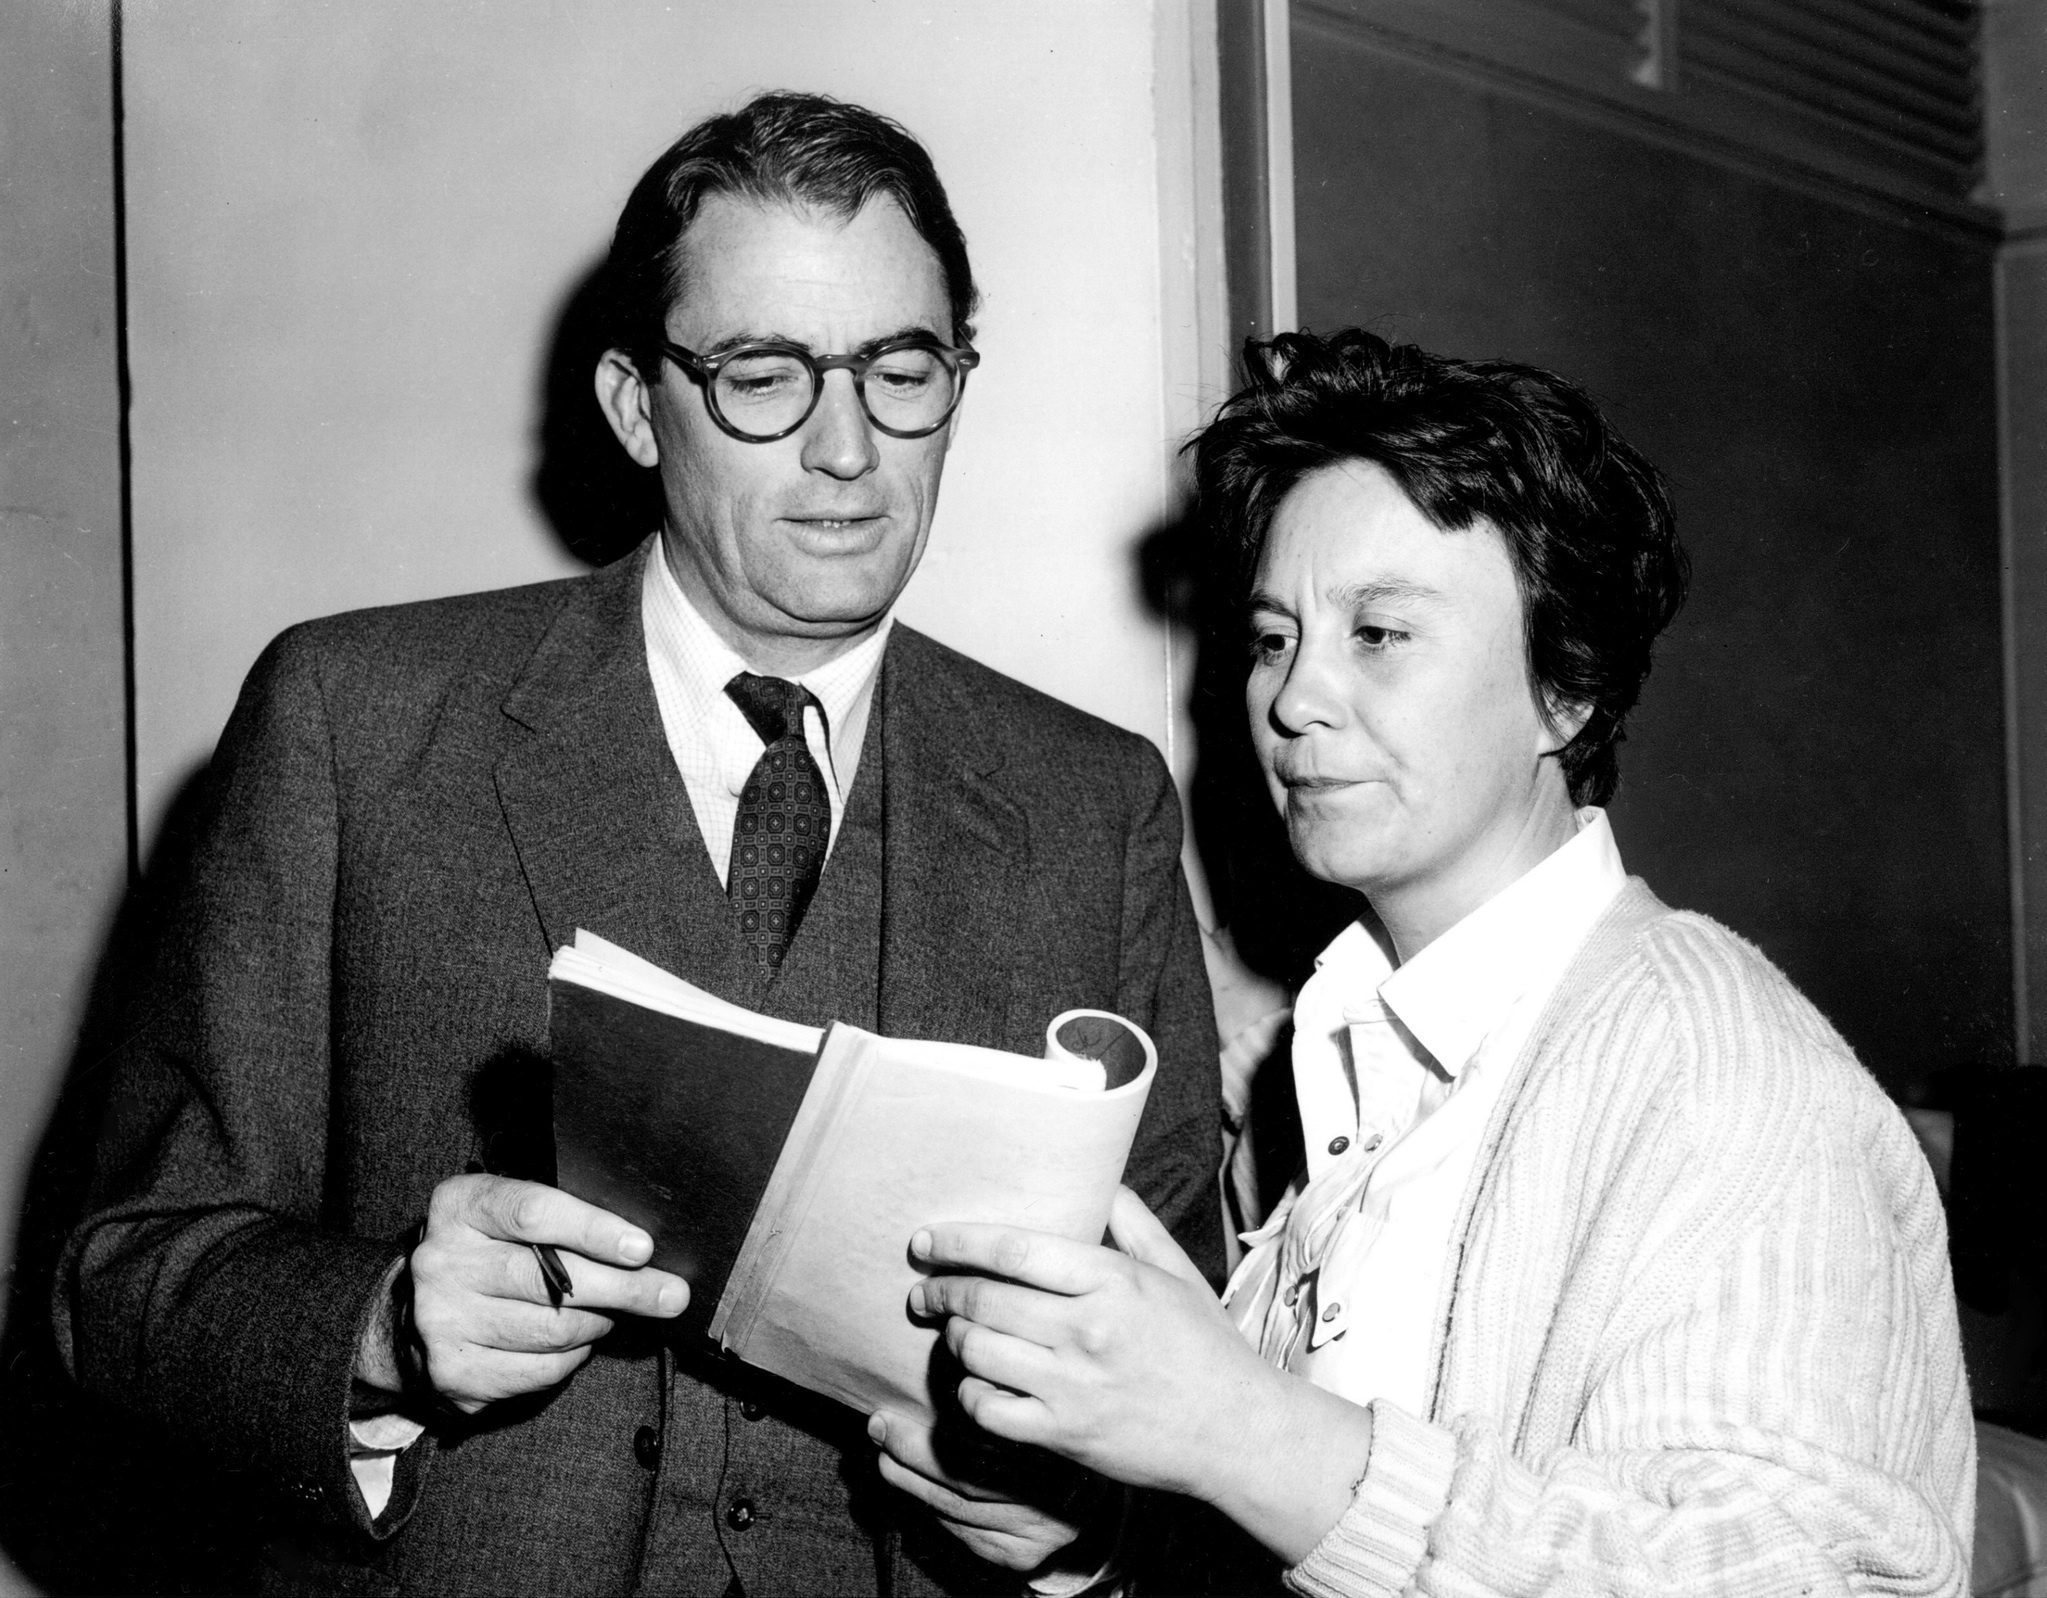 Gregory Peck and Harper Lee in To Kill a Mockingbird (1962)